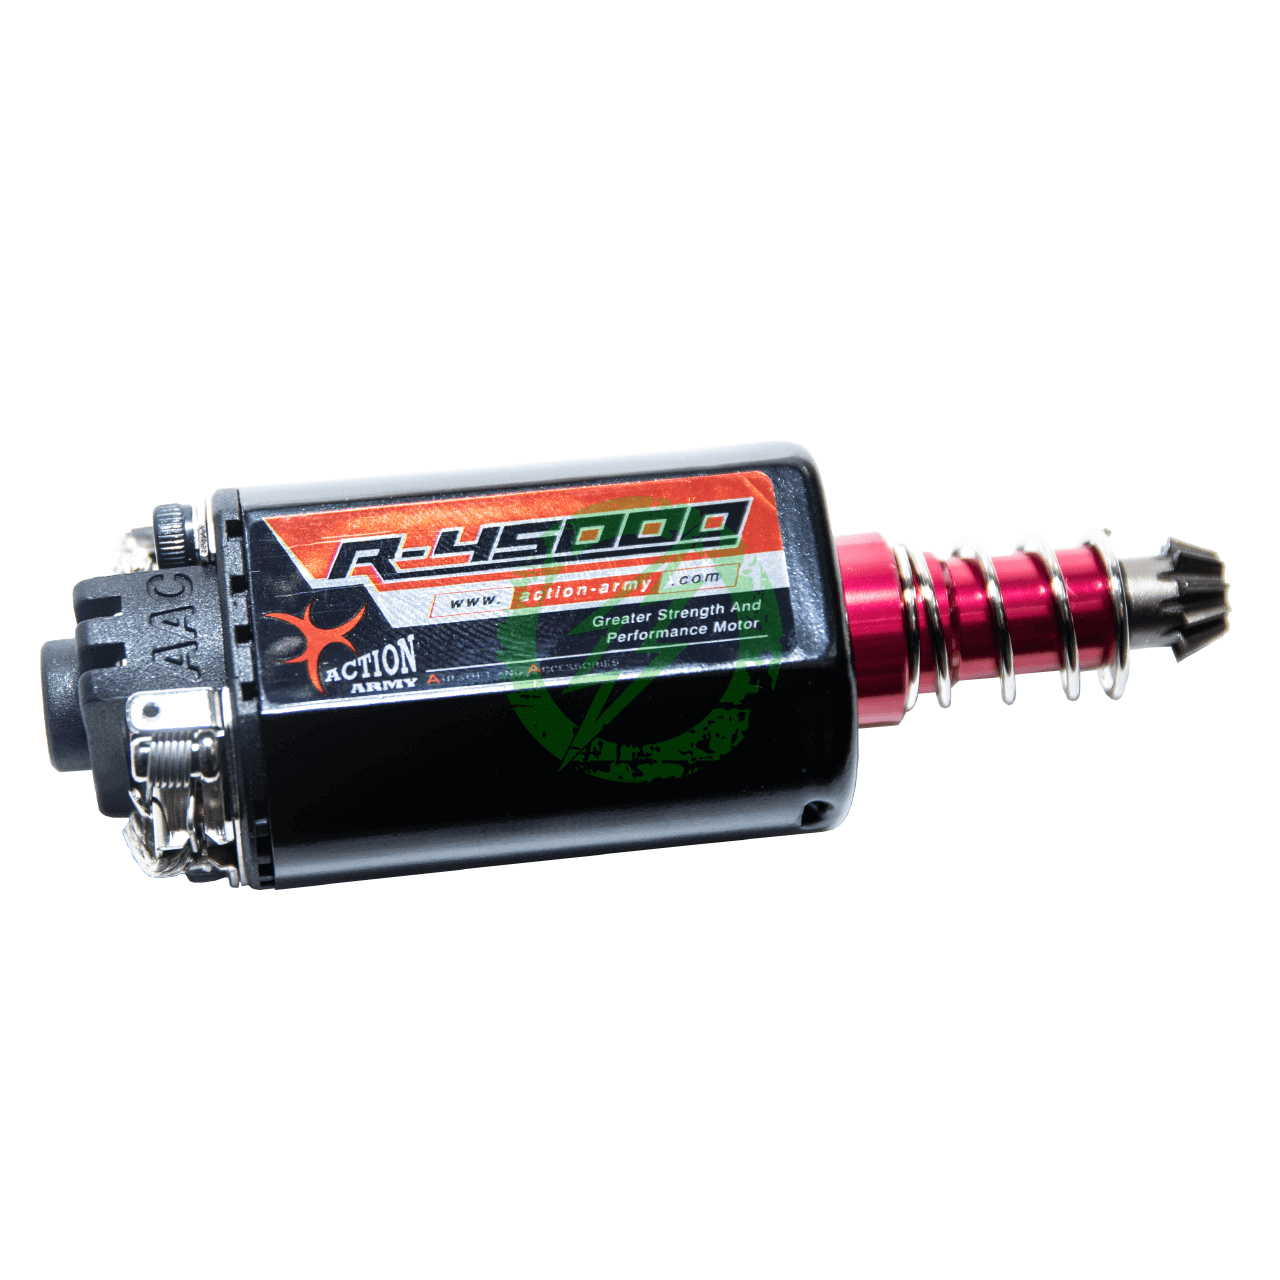 Action Army Infinity Long Axis Motor 45000